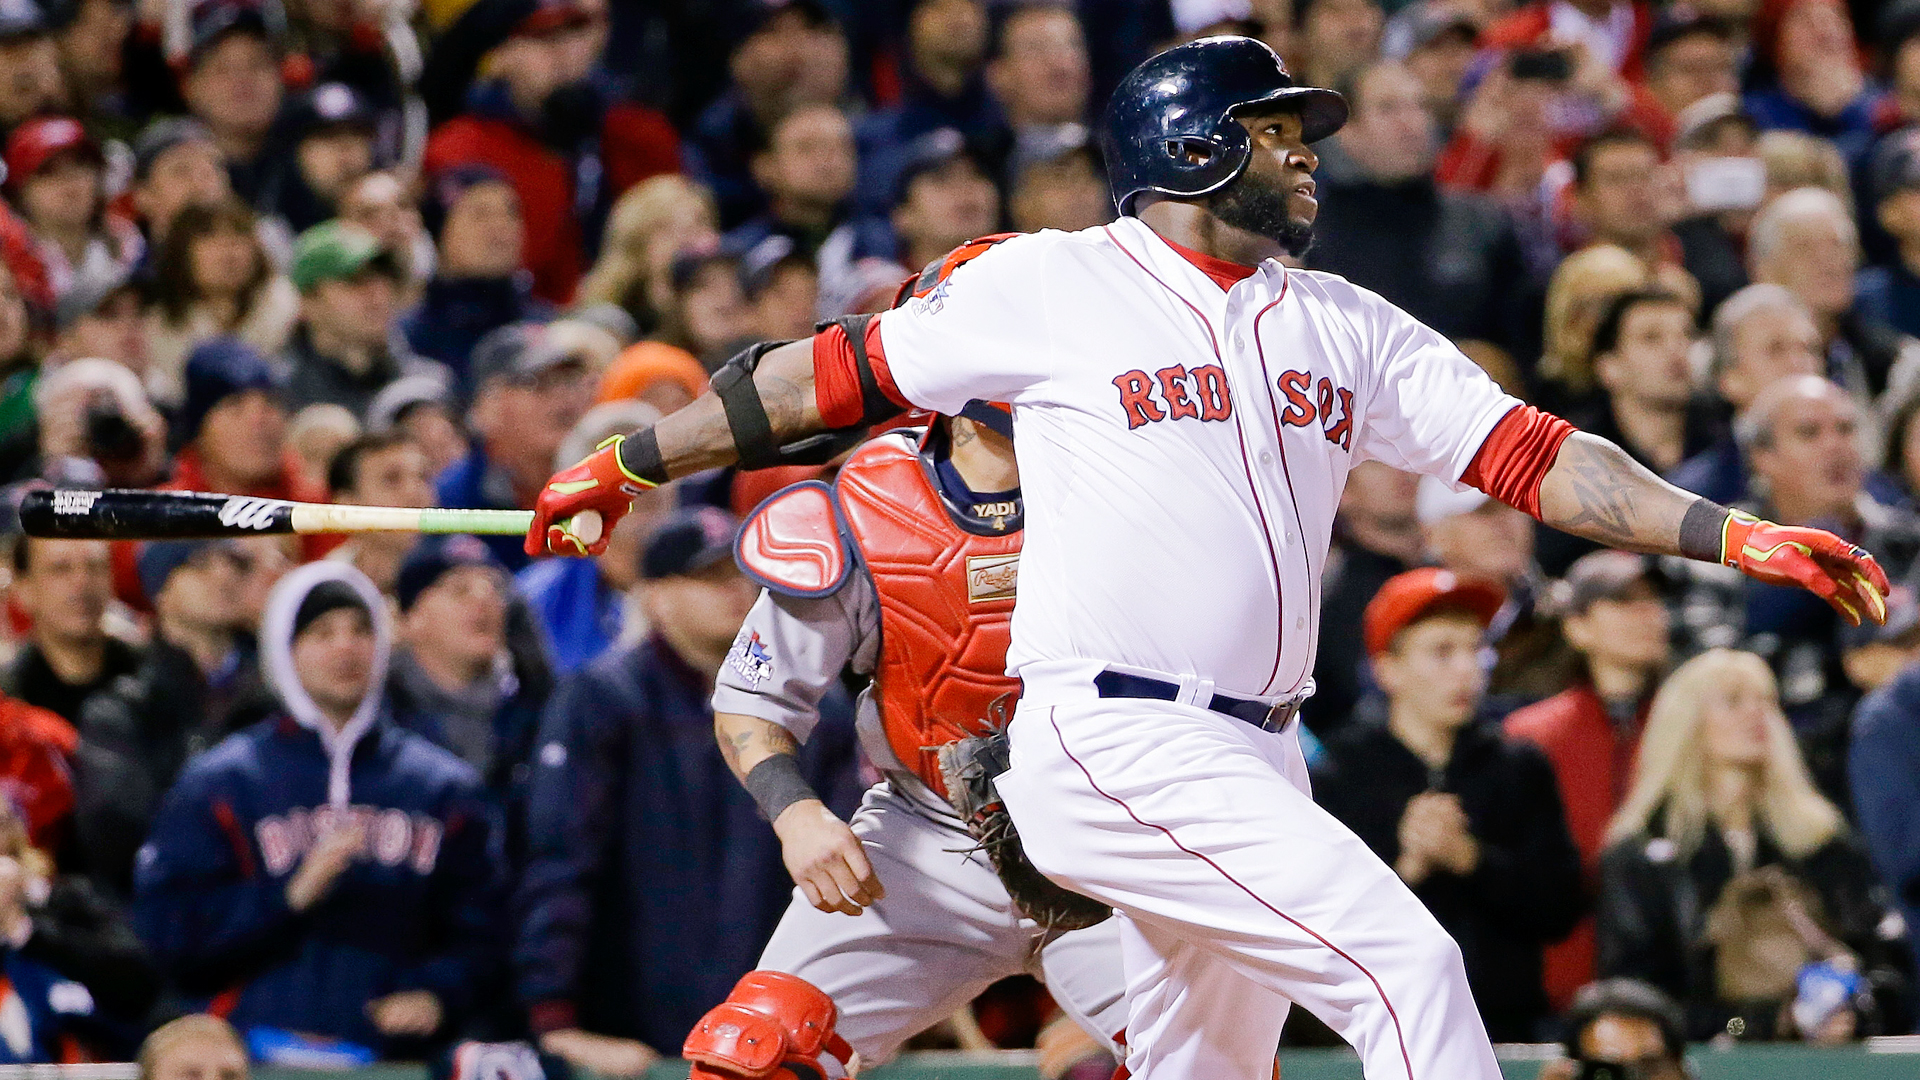 Fantasy baseball team report: Boston Red Sox